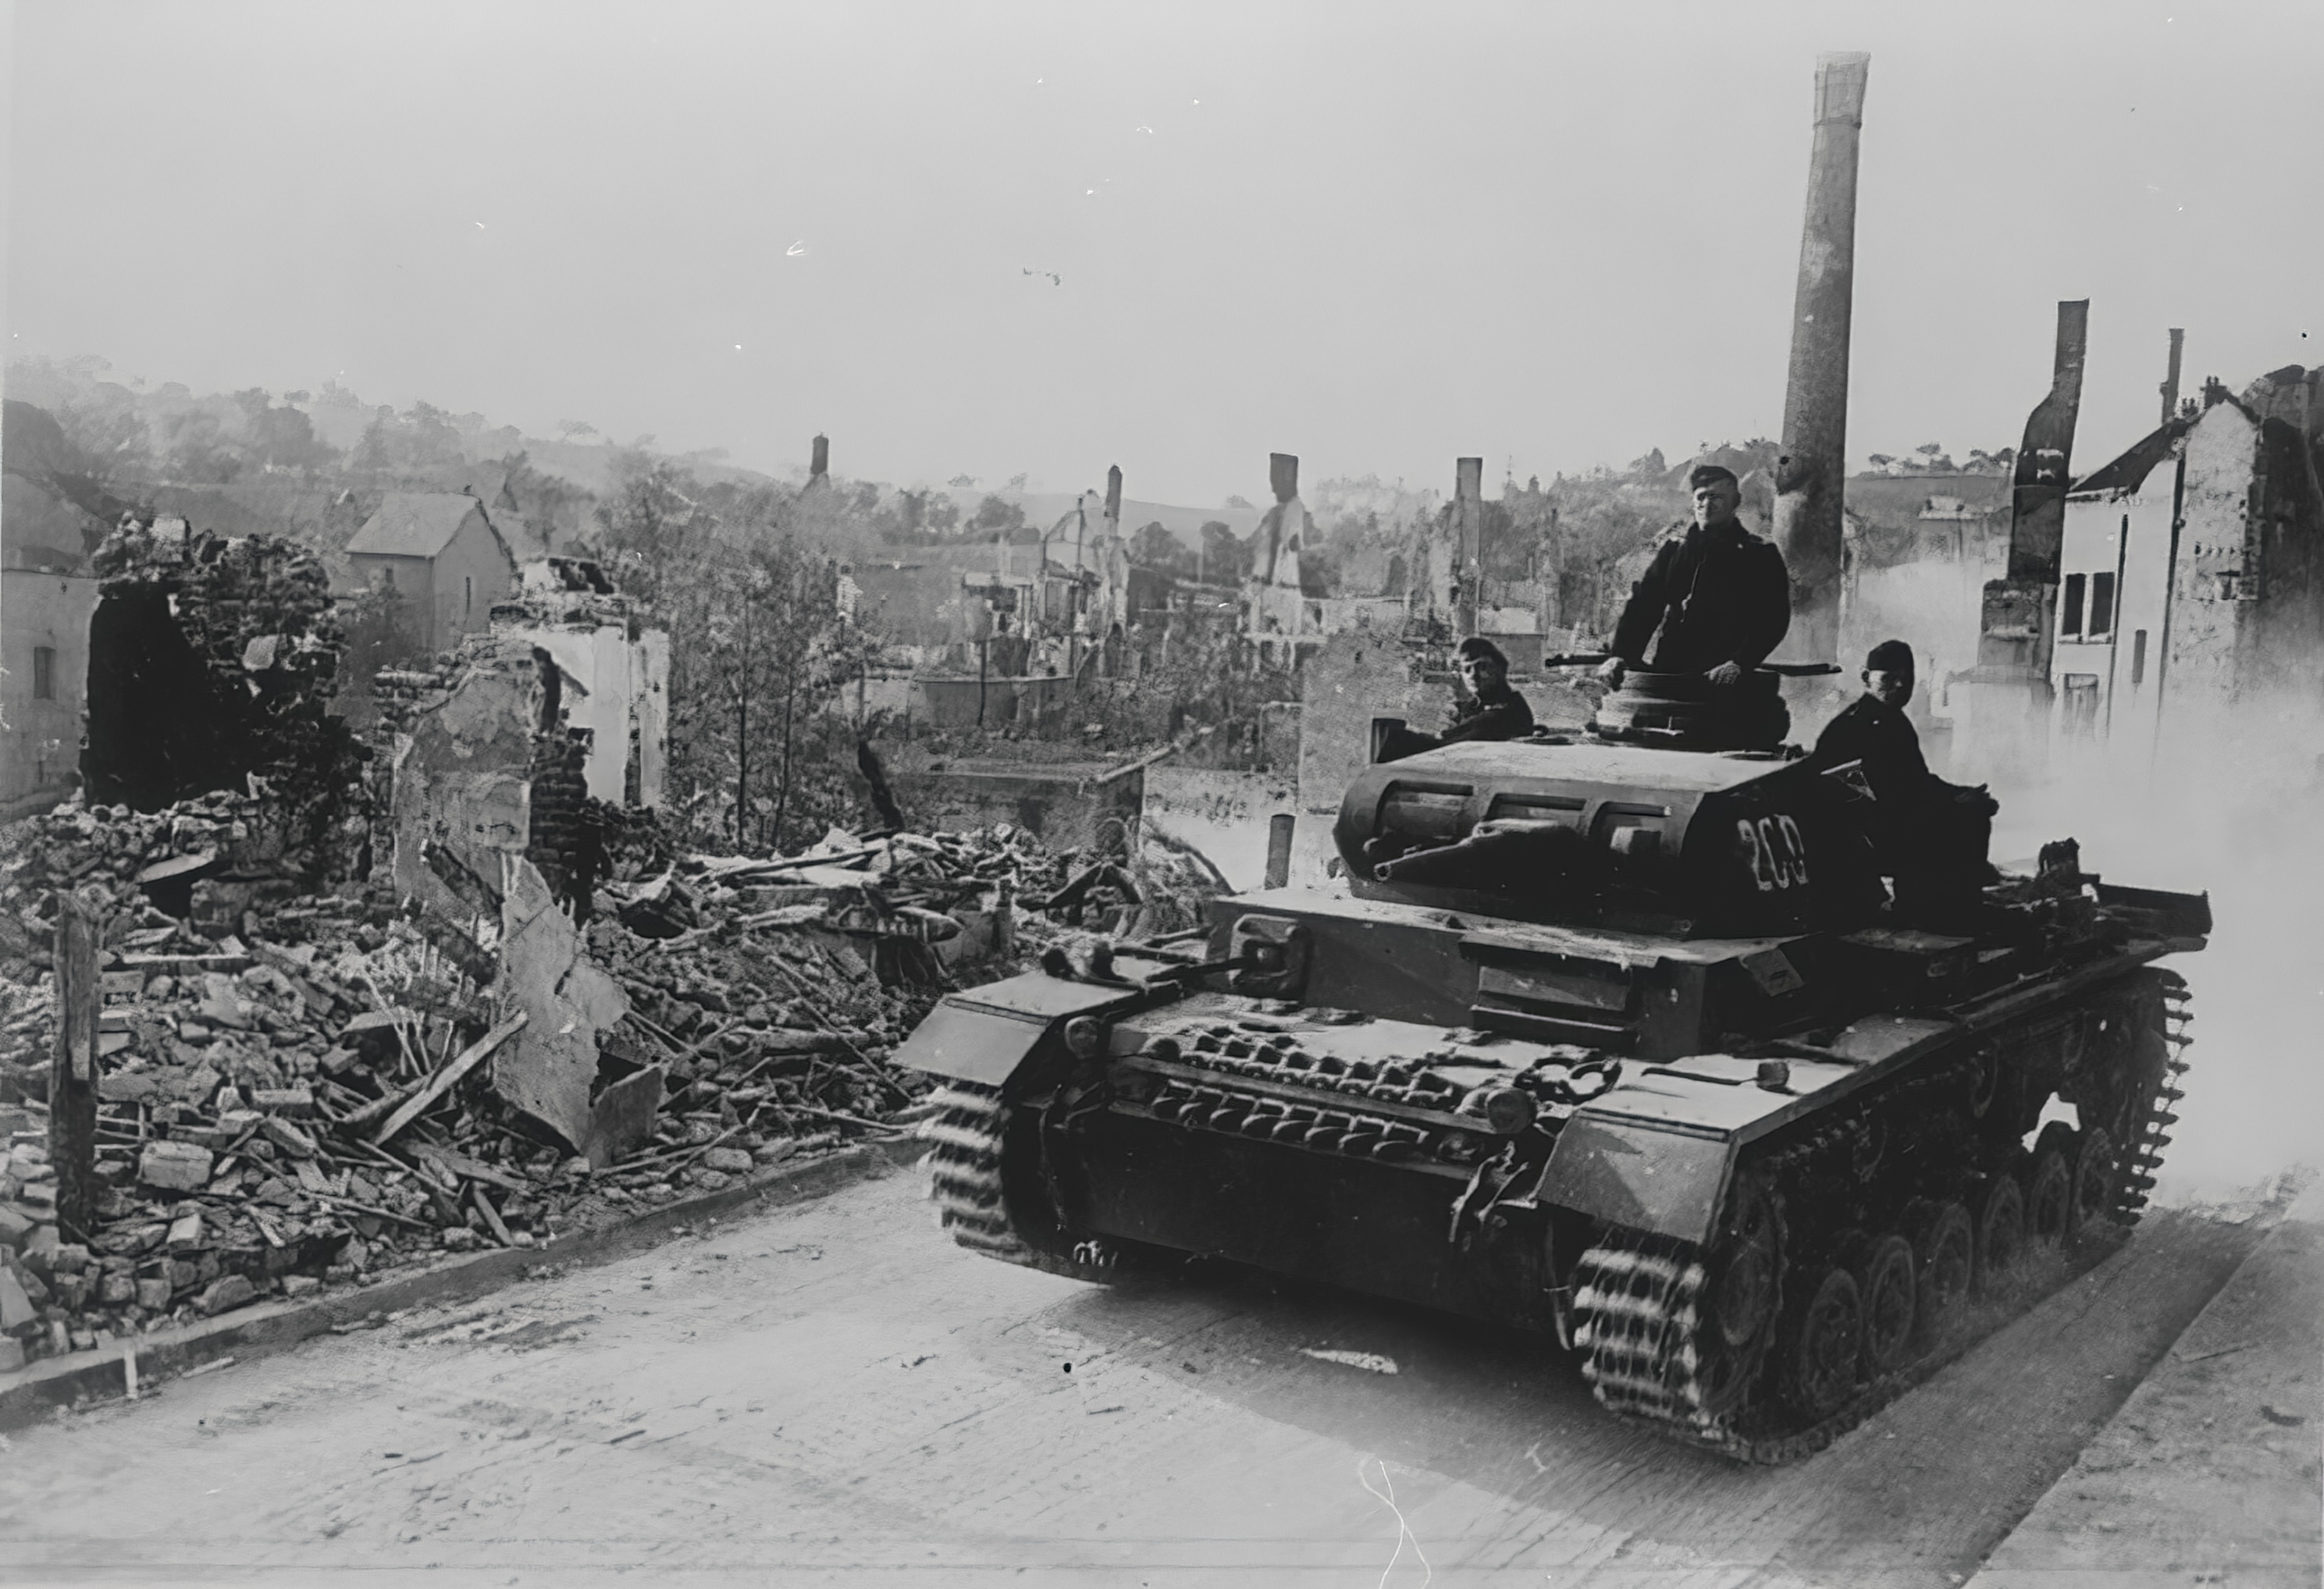 Wehrmacht Panzer III tanks drive through a bombed out town France 21st Jun 1940 NIOD